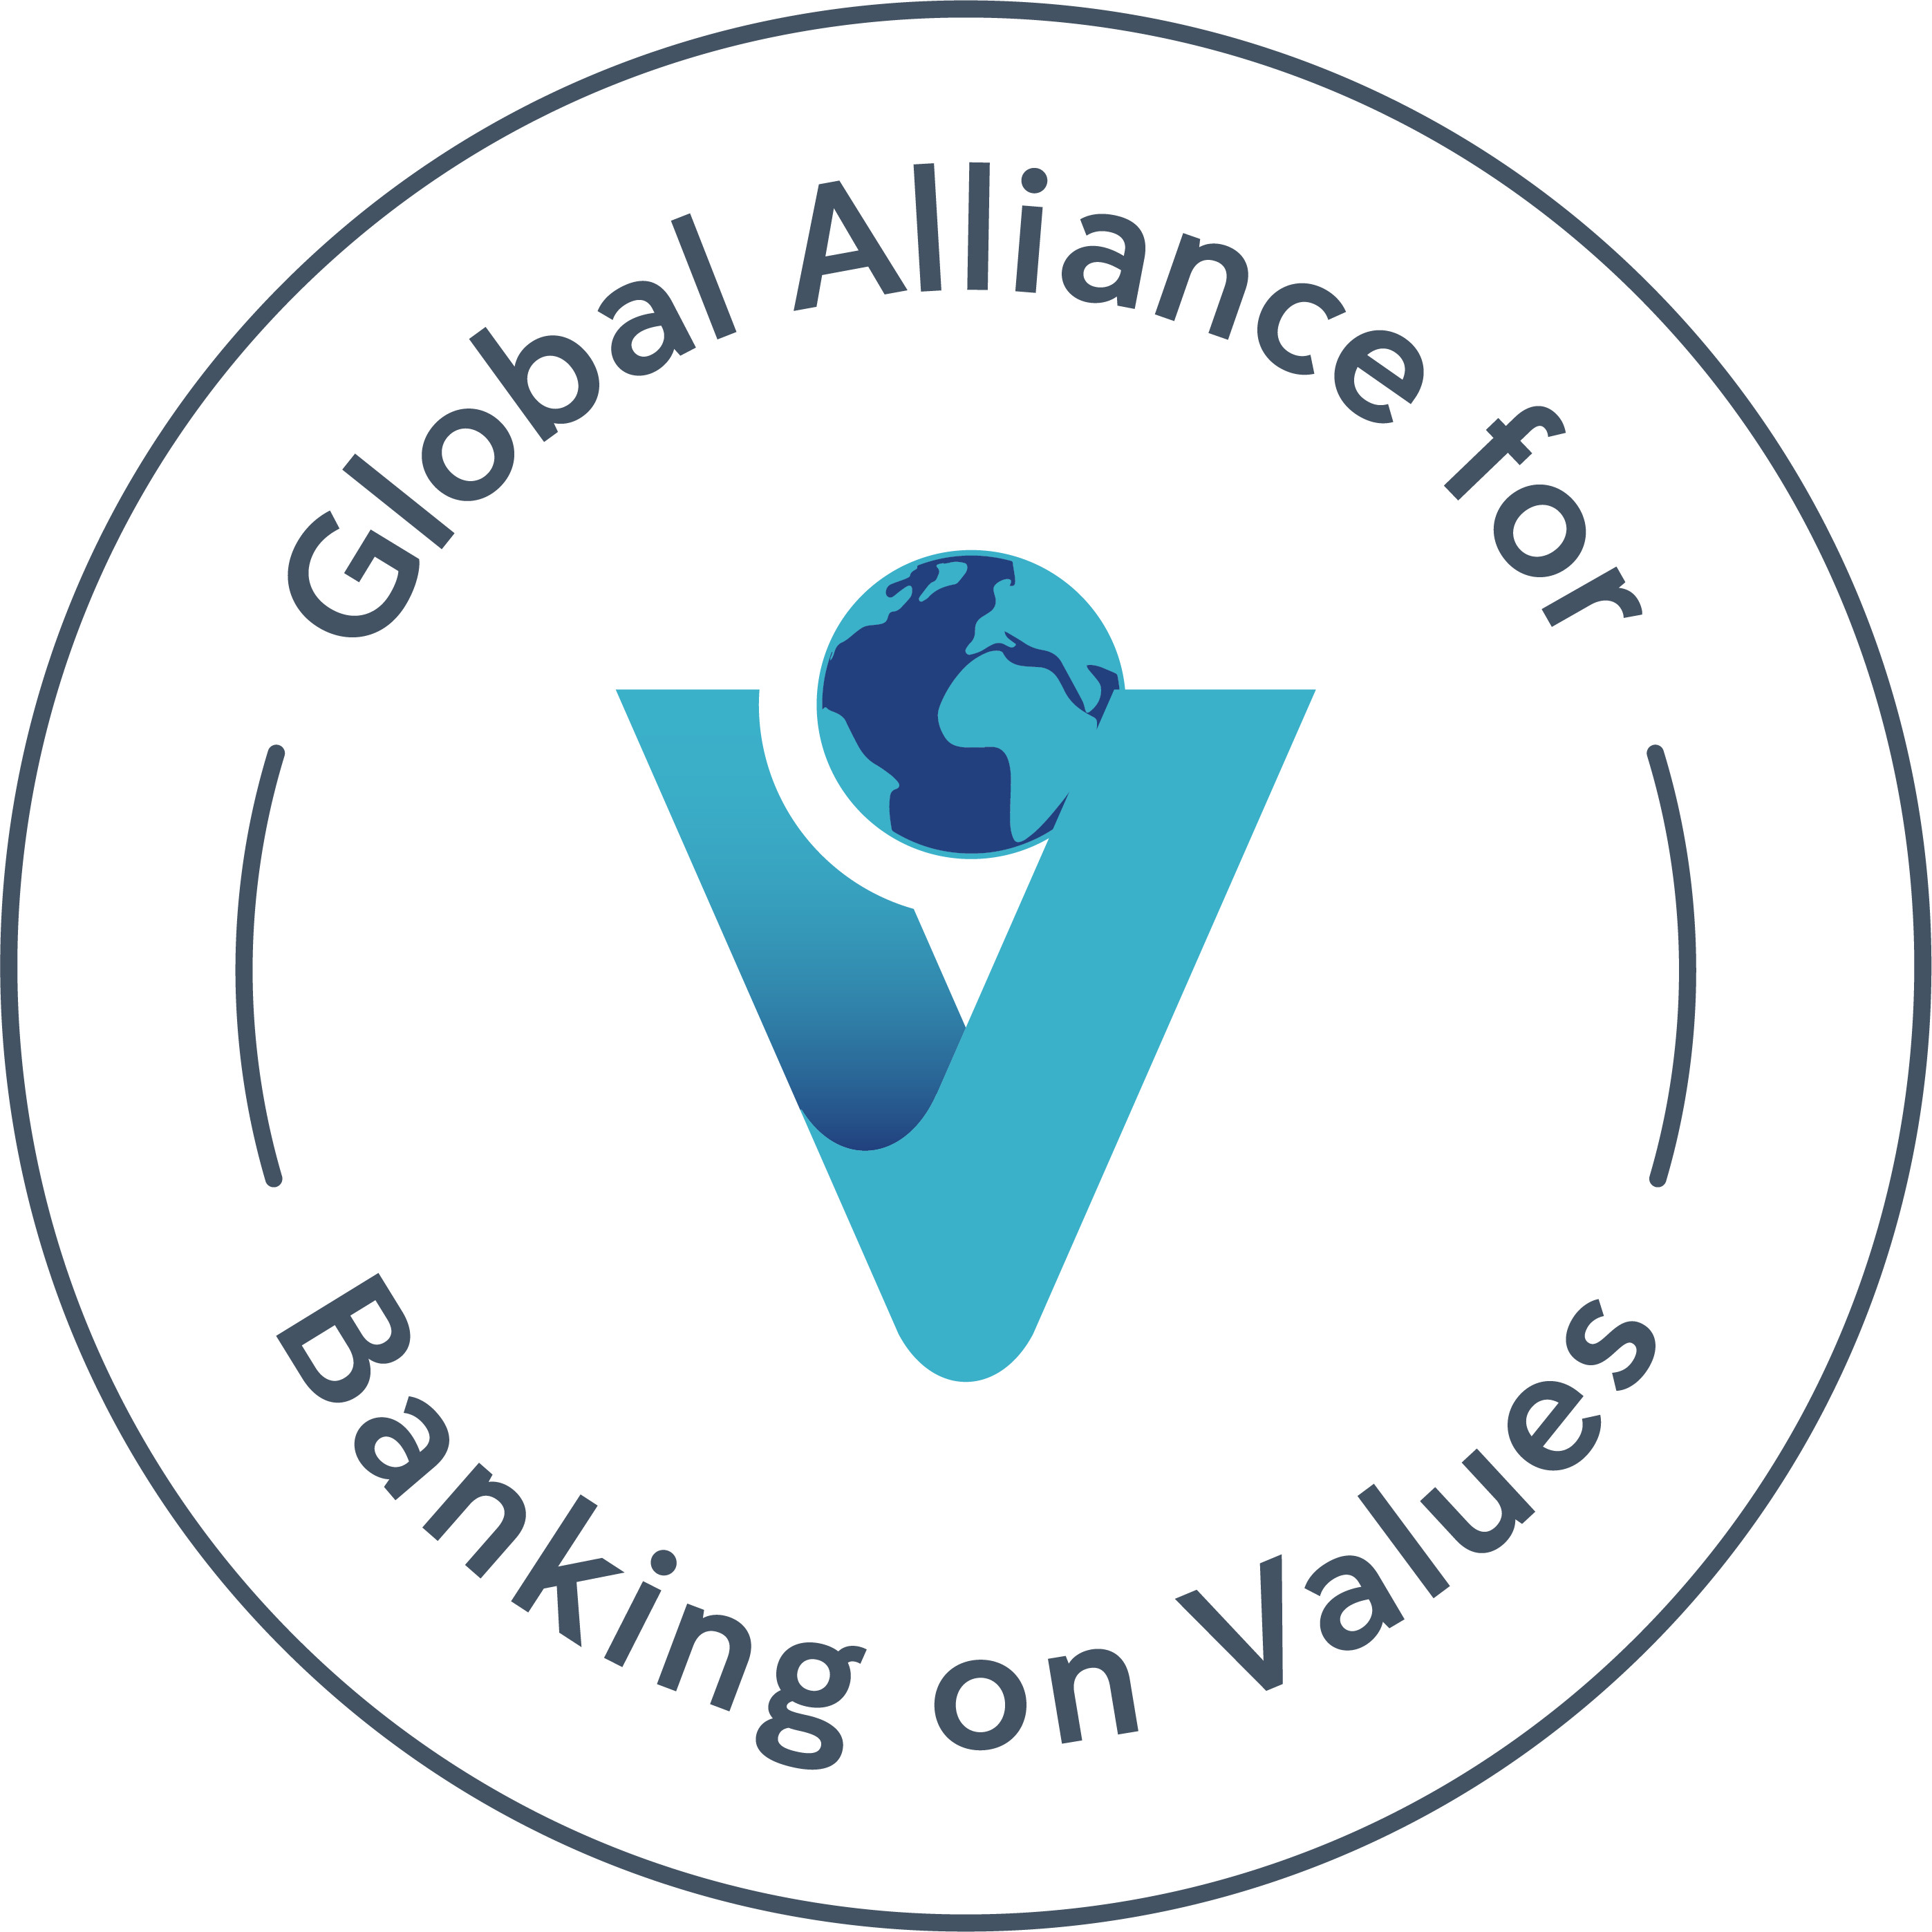 Global Alliance for Banking on Values decorative logo